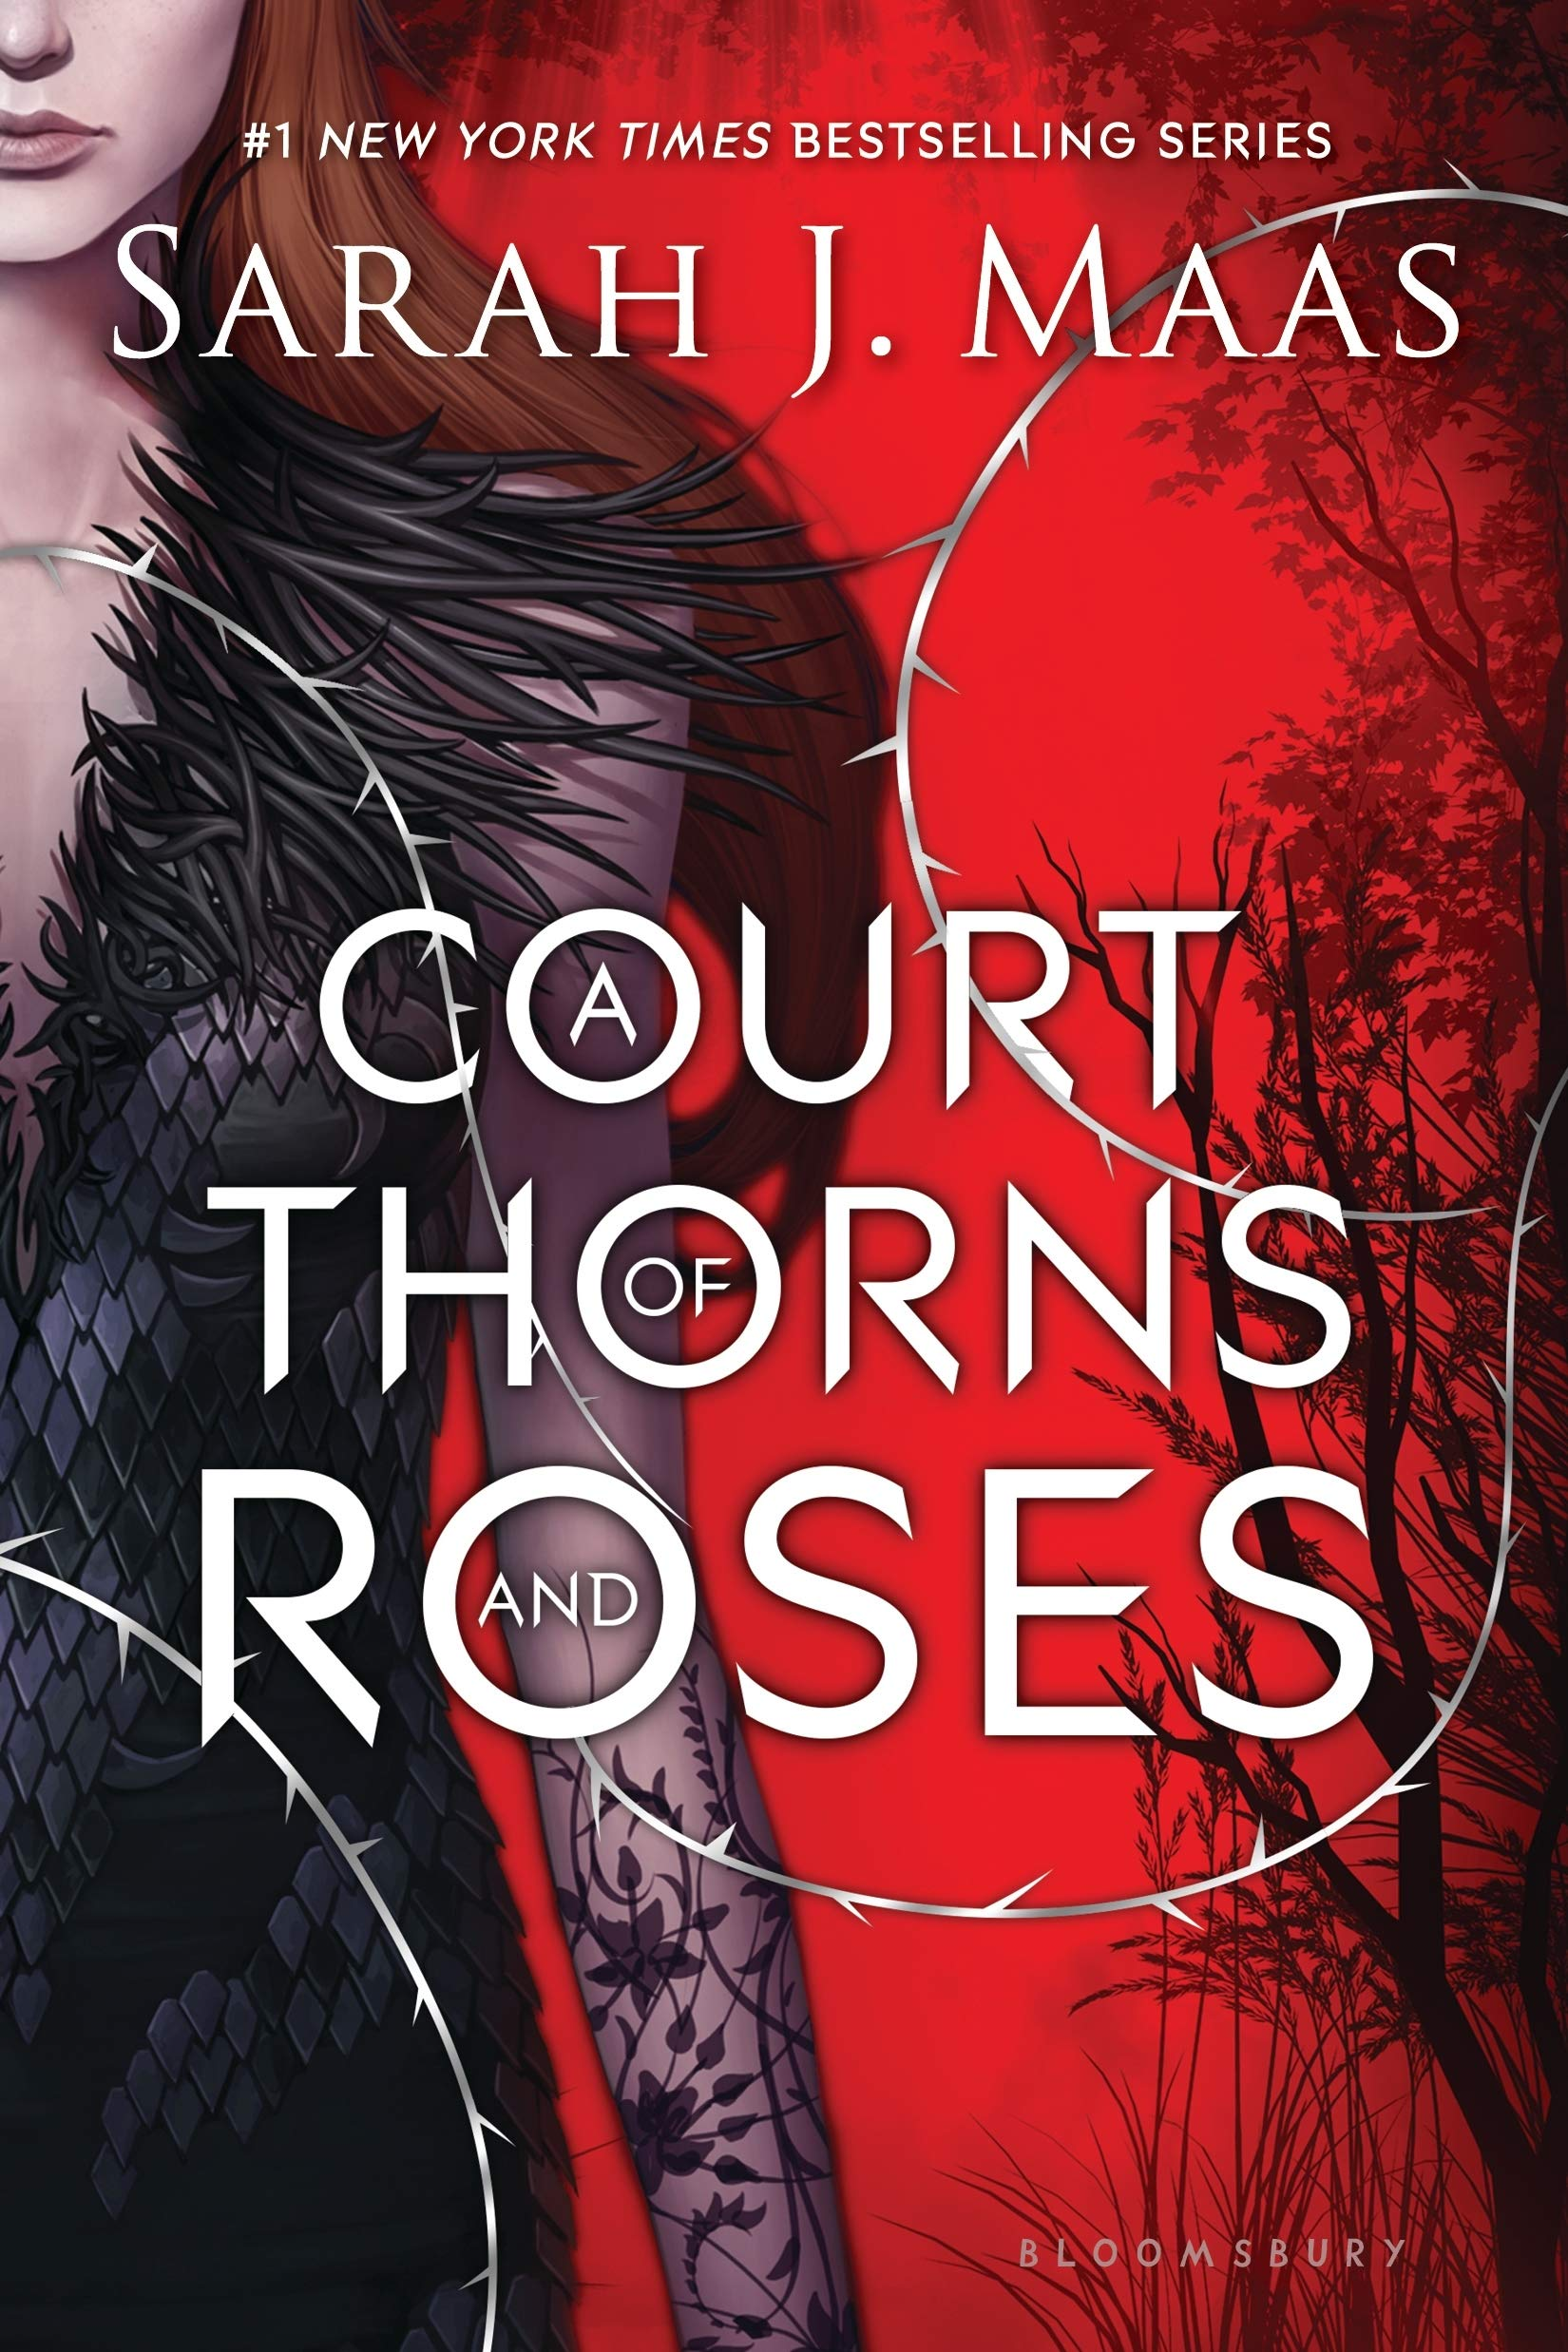 Amazon.com: A Court of Thorns and Roses (A Court of Thorns and Roses, 1)  (9781619635180): Maas, Sarah J.: Books